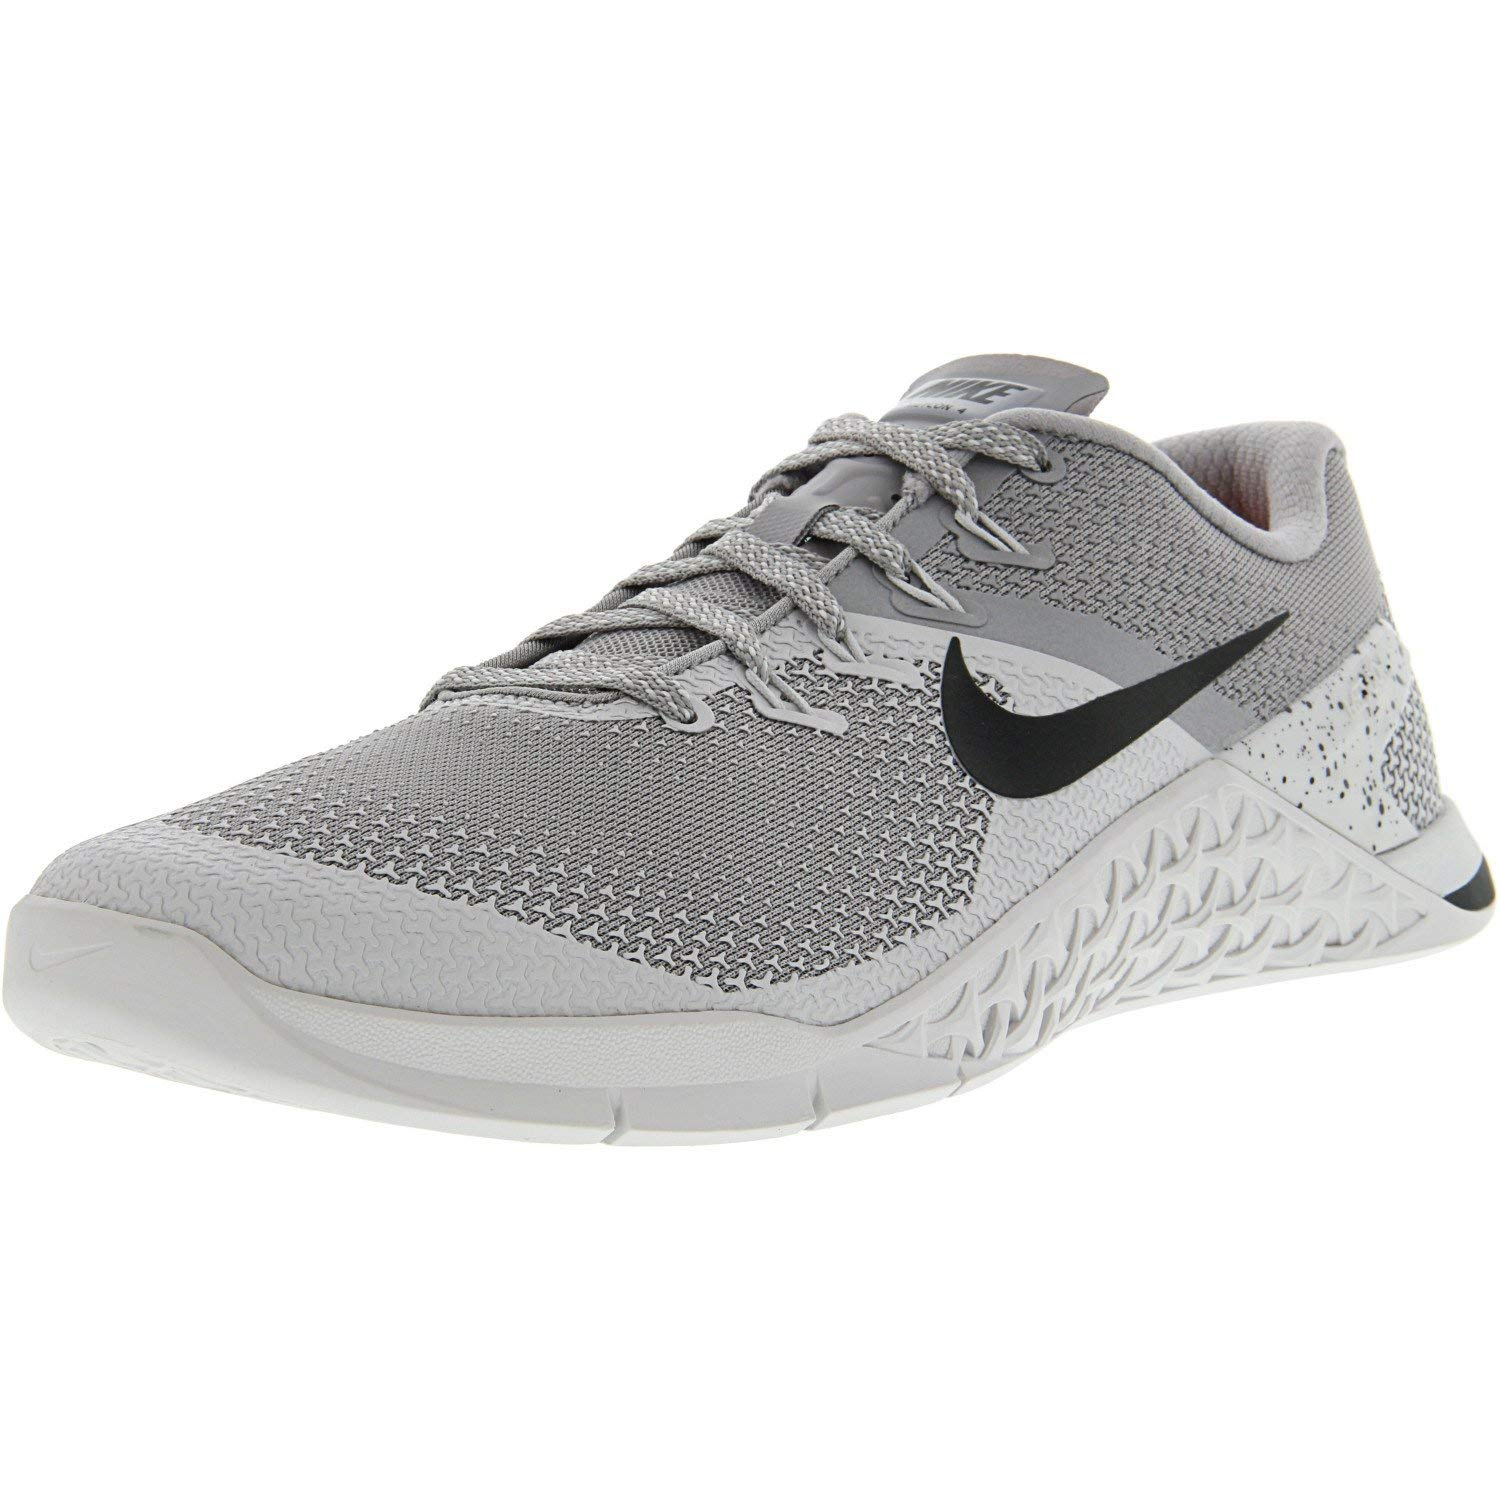 Shop Nike METCONS, Reebok CrossFit Training Shoes Box Basics